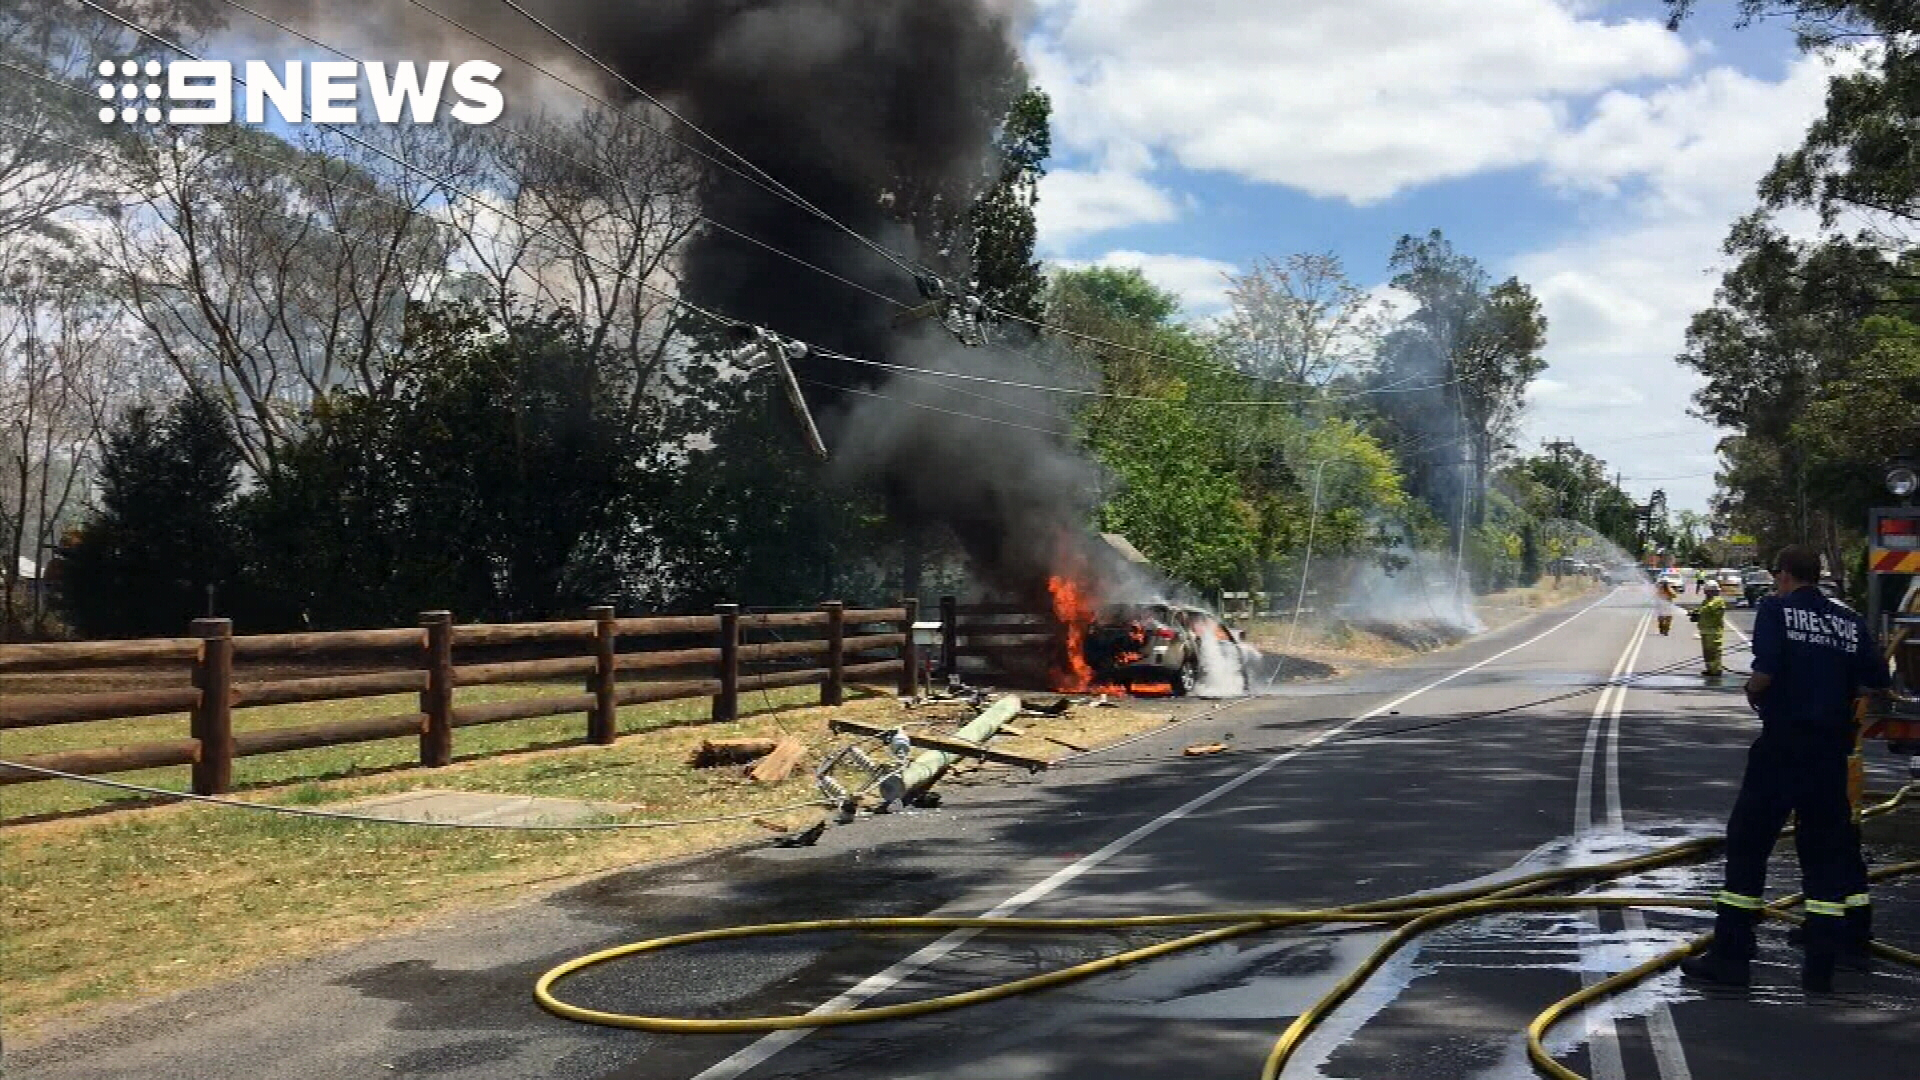 Baby and grandmother pulled from burning car